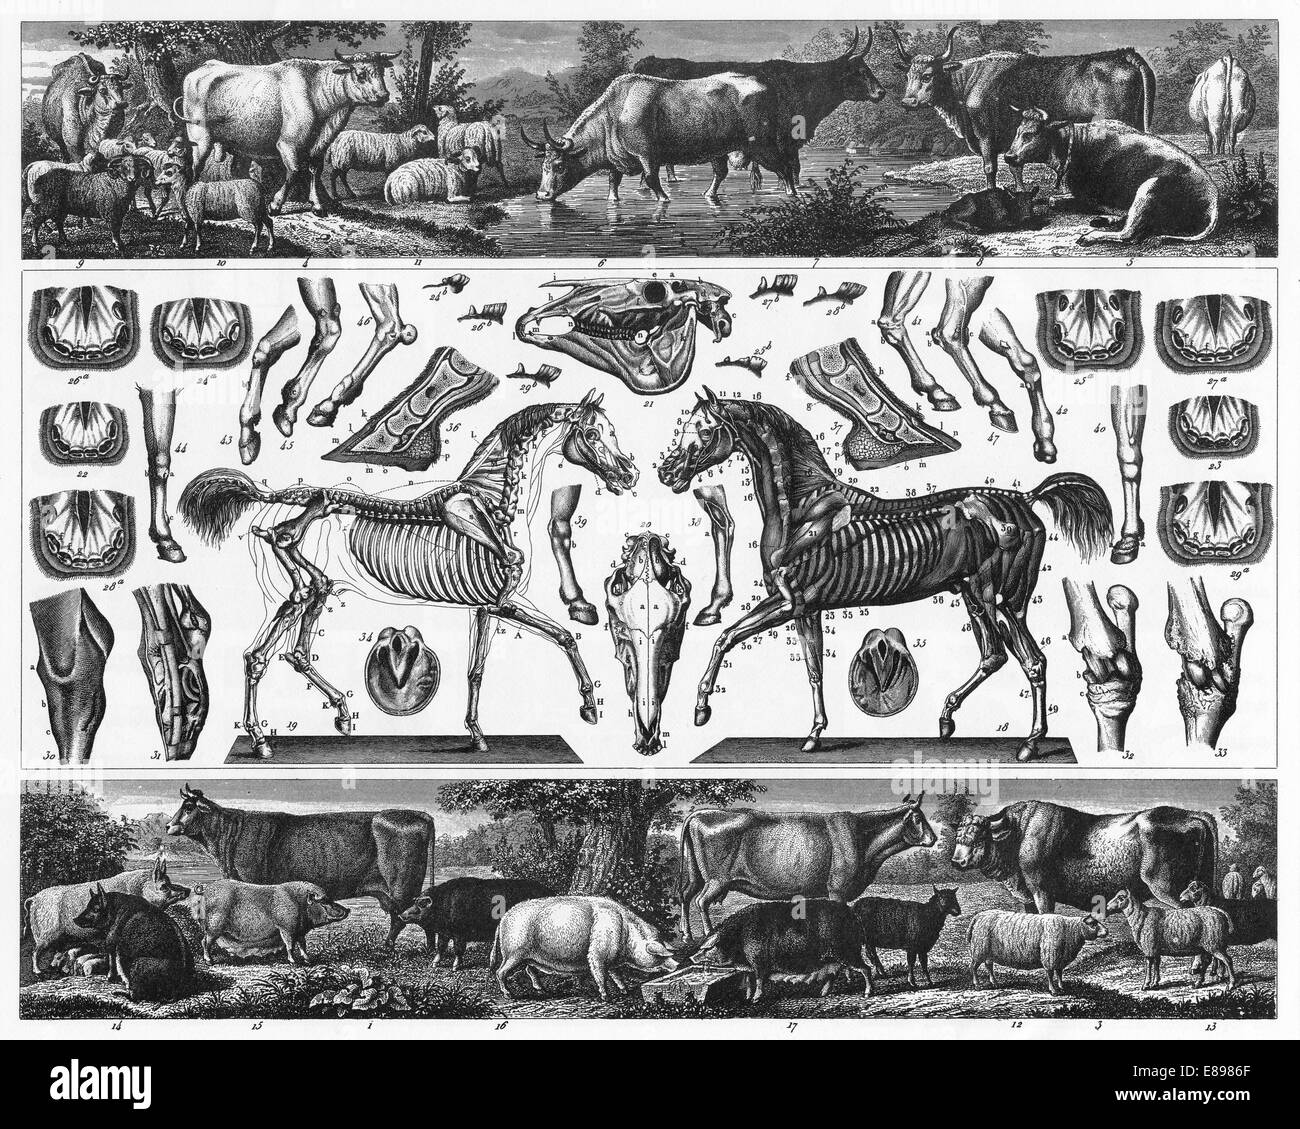 Engraved illustrations of Husbandry from Iconographic Encyclopedia of Science, Literature and Art, Published in - Stock Image